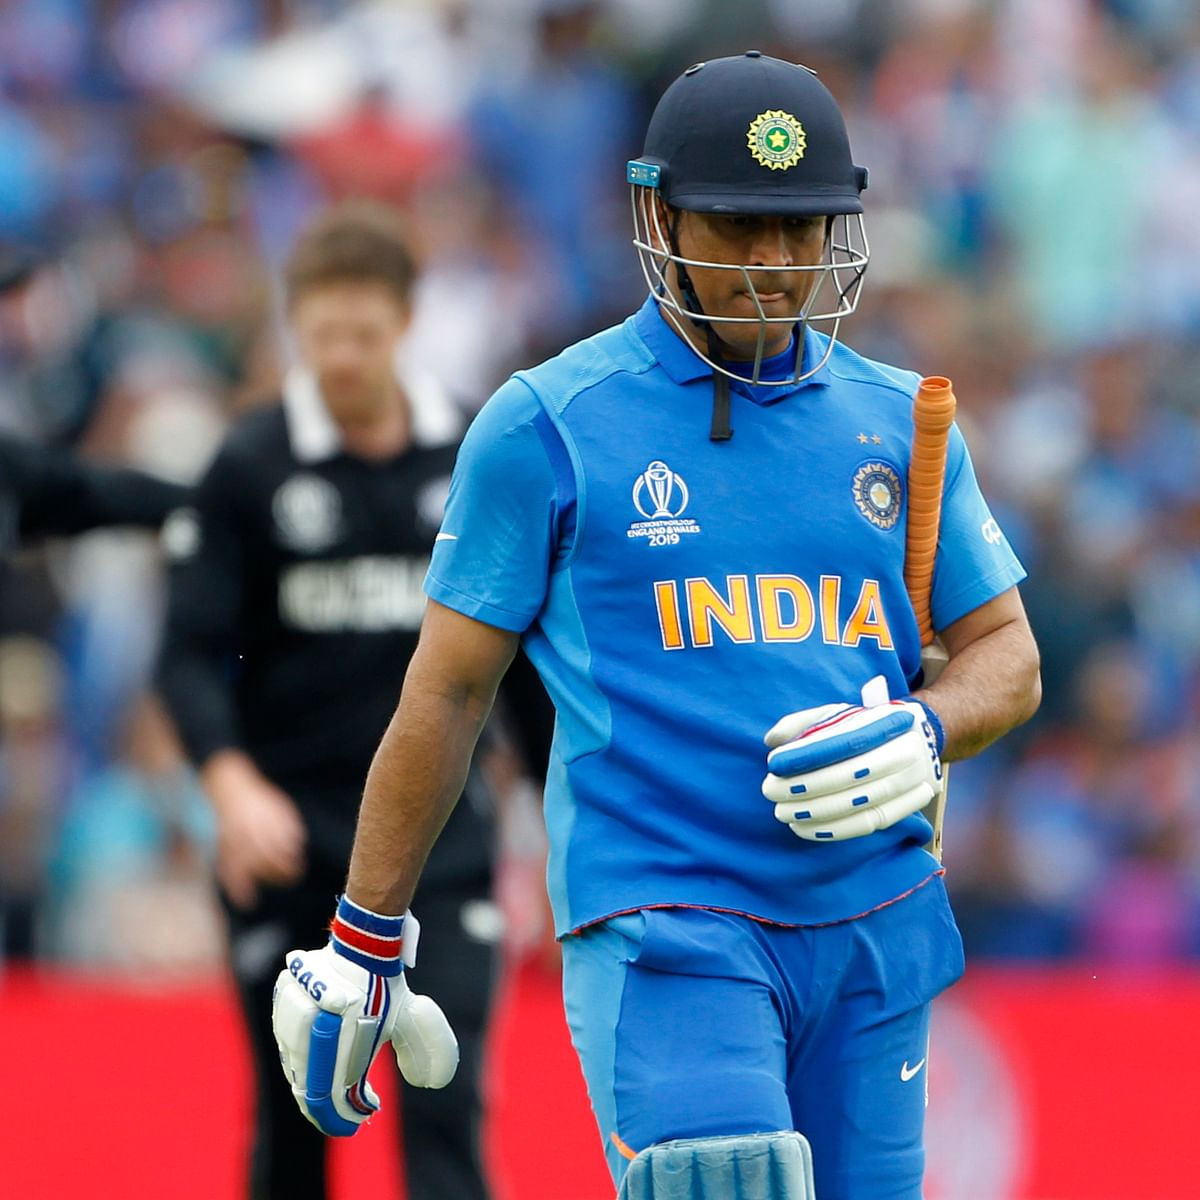 MS Dhoni retires: Impact greater than Tendulkar, here's why Captain Cool will be immortalised